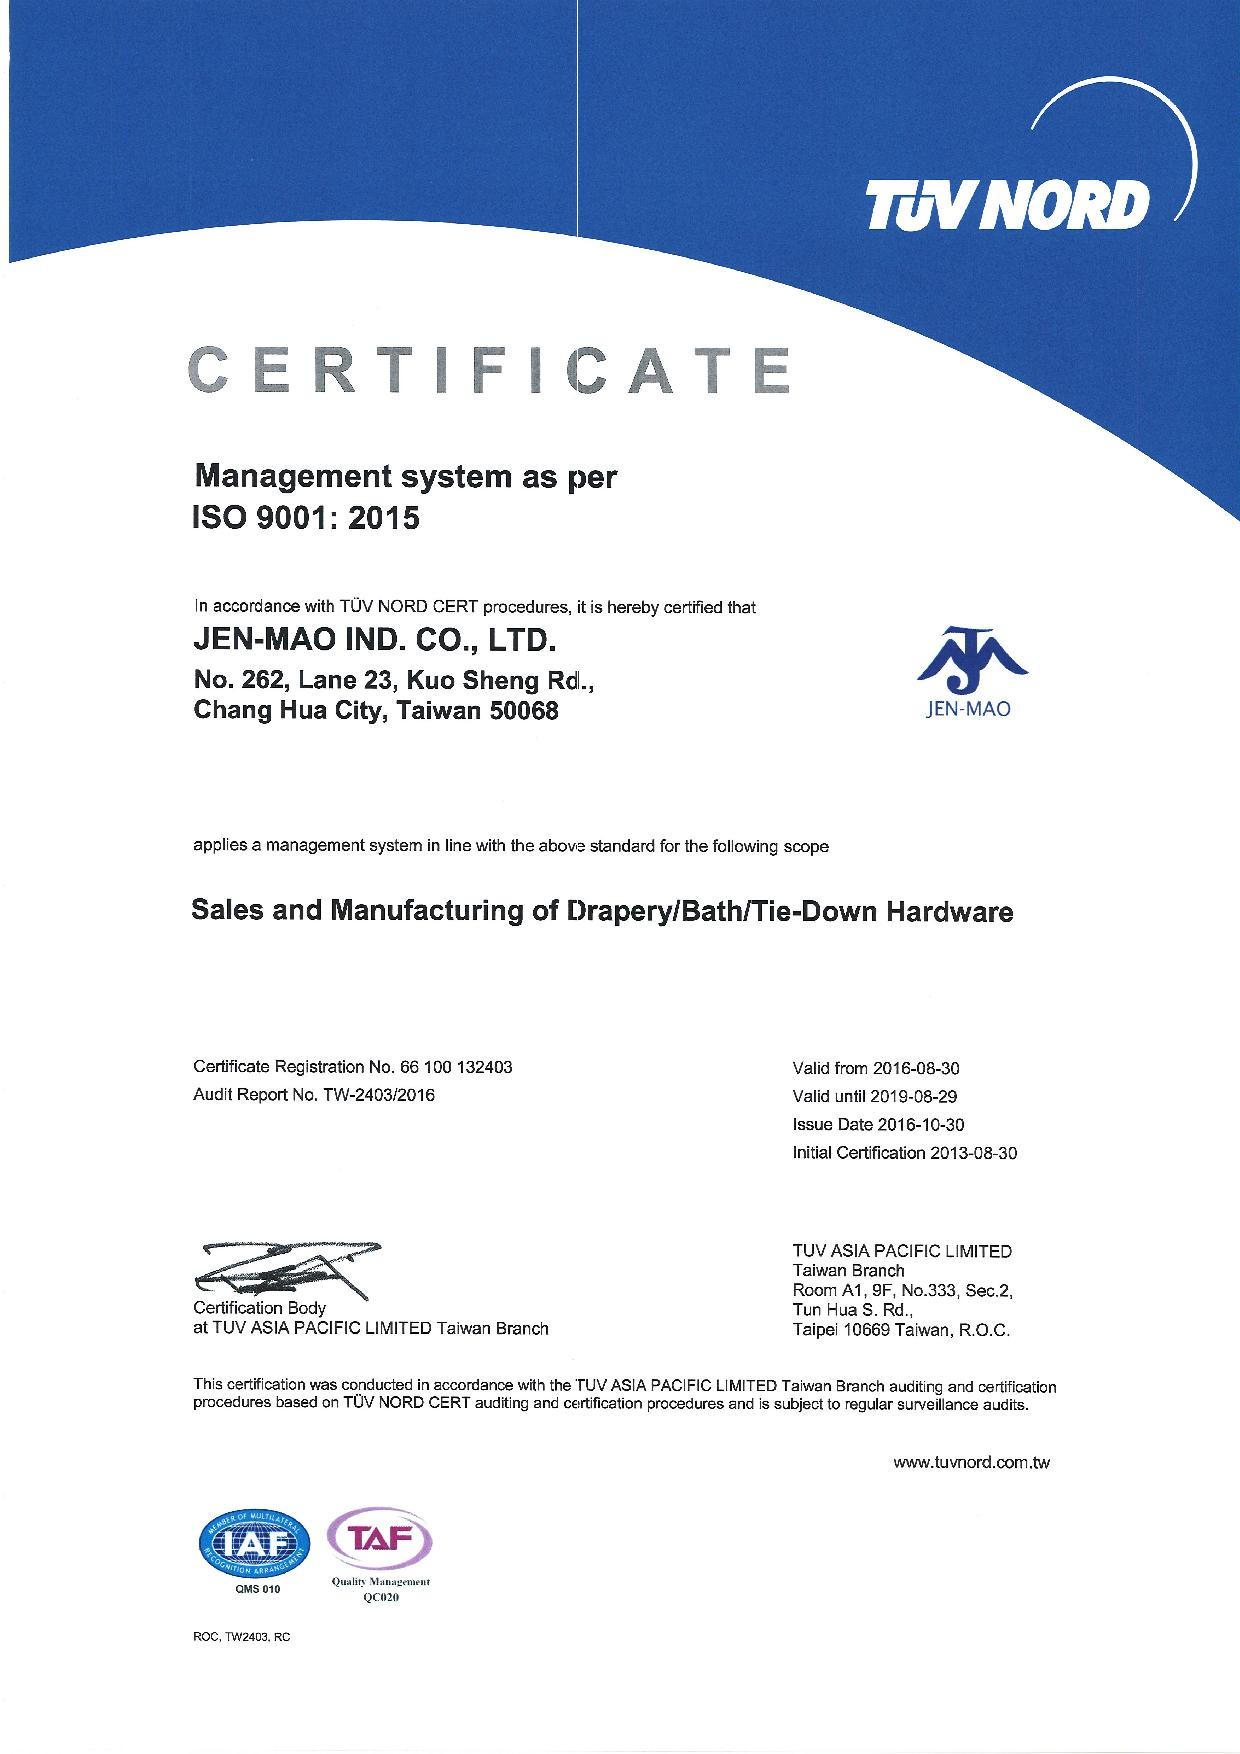 Quality Policy - ISO 9001:2015 Certificate